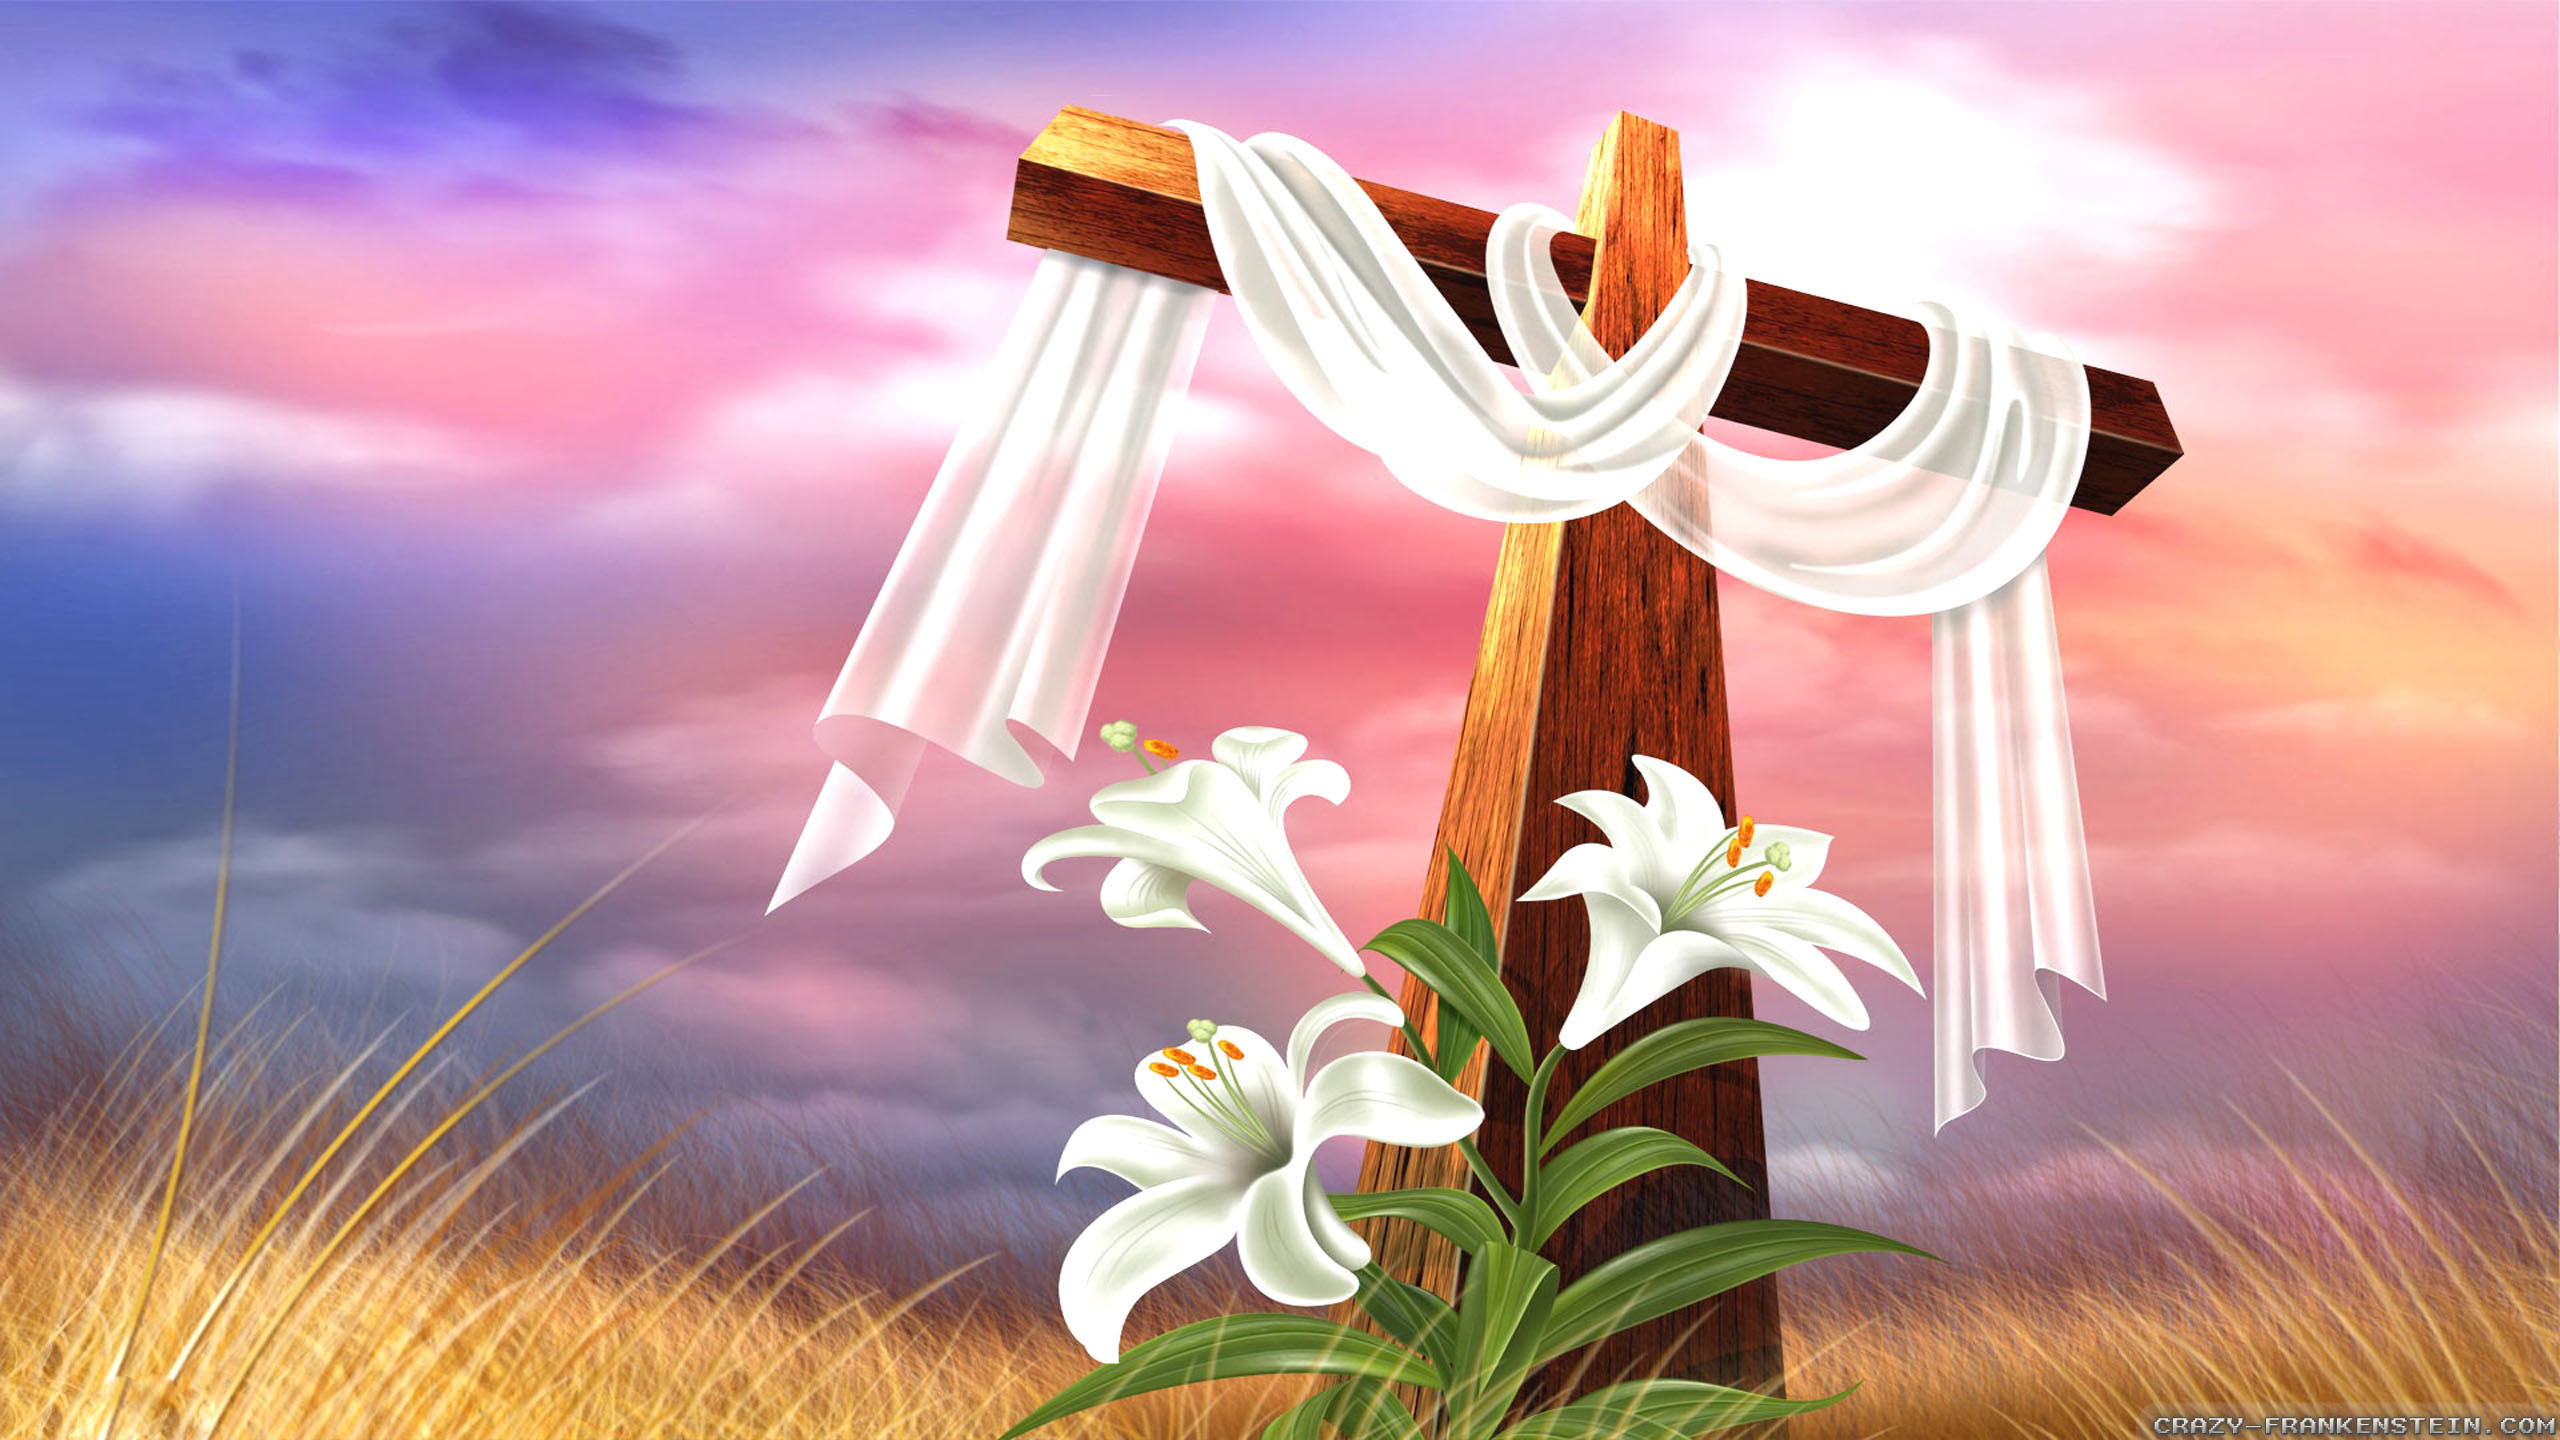 443546-christian-easter-wallpaper-2560x1440-ipad-pro-1